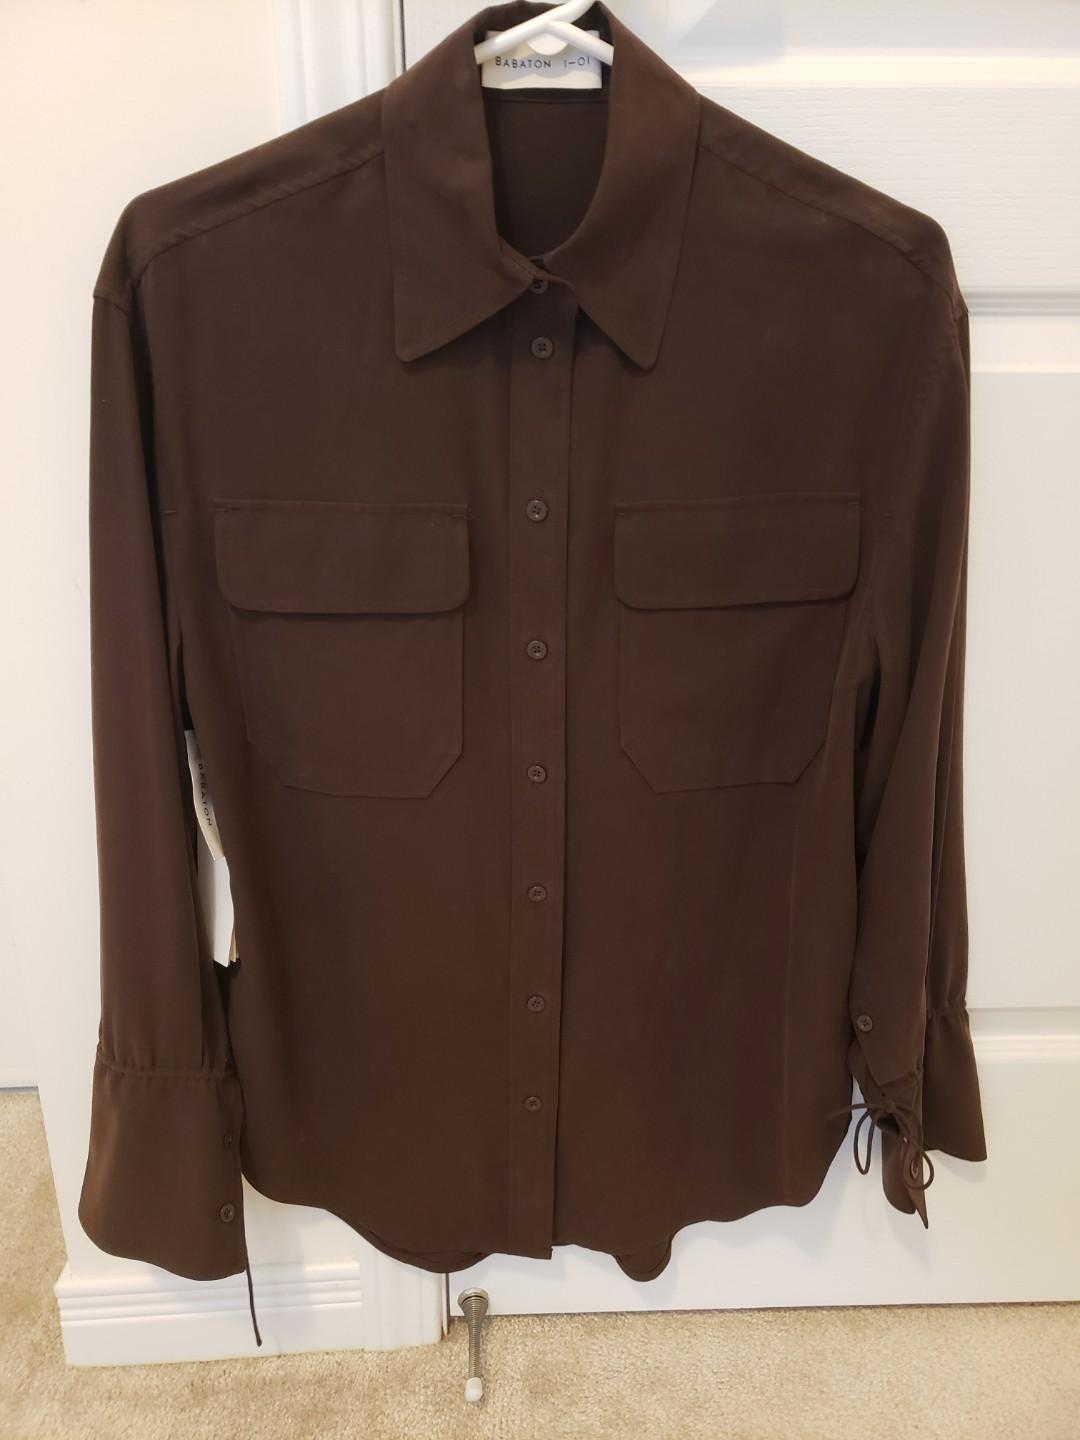 Babaton 1-01 100% Silk Johanson Shirt Warm Earth Aritzia